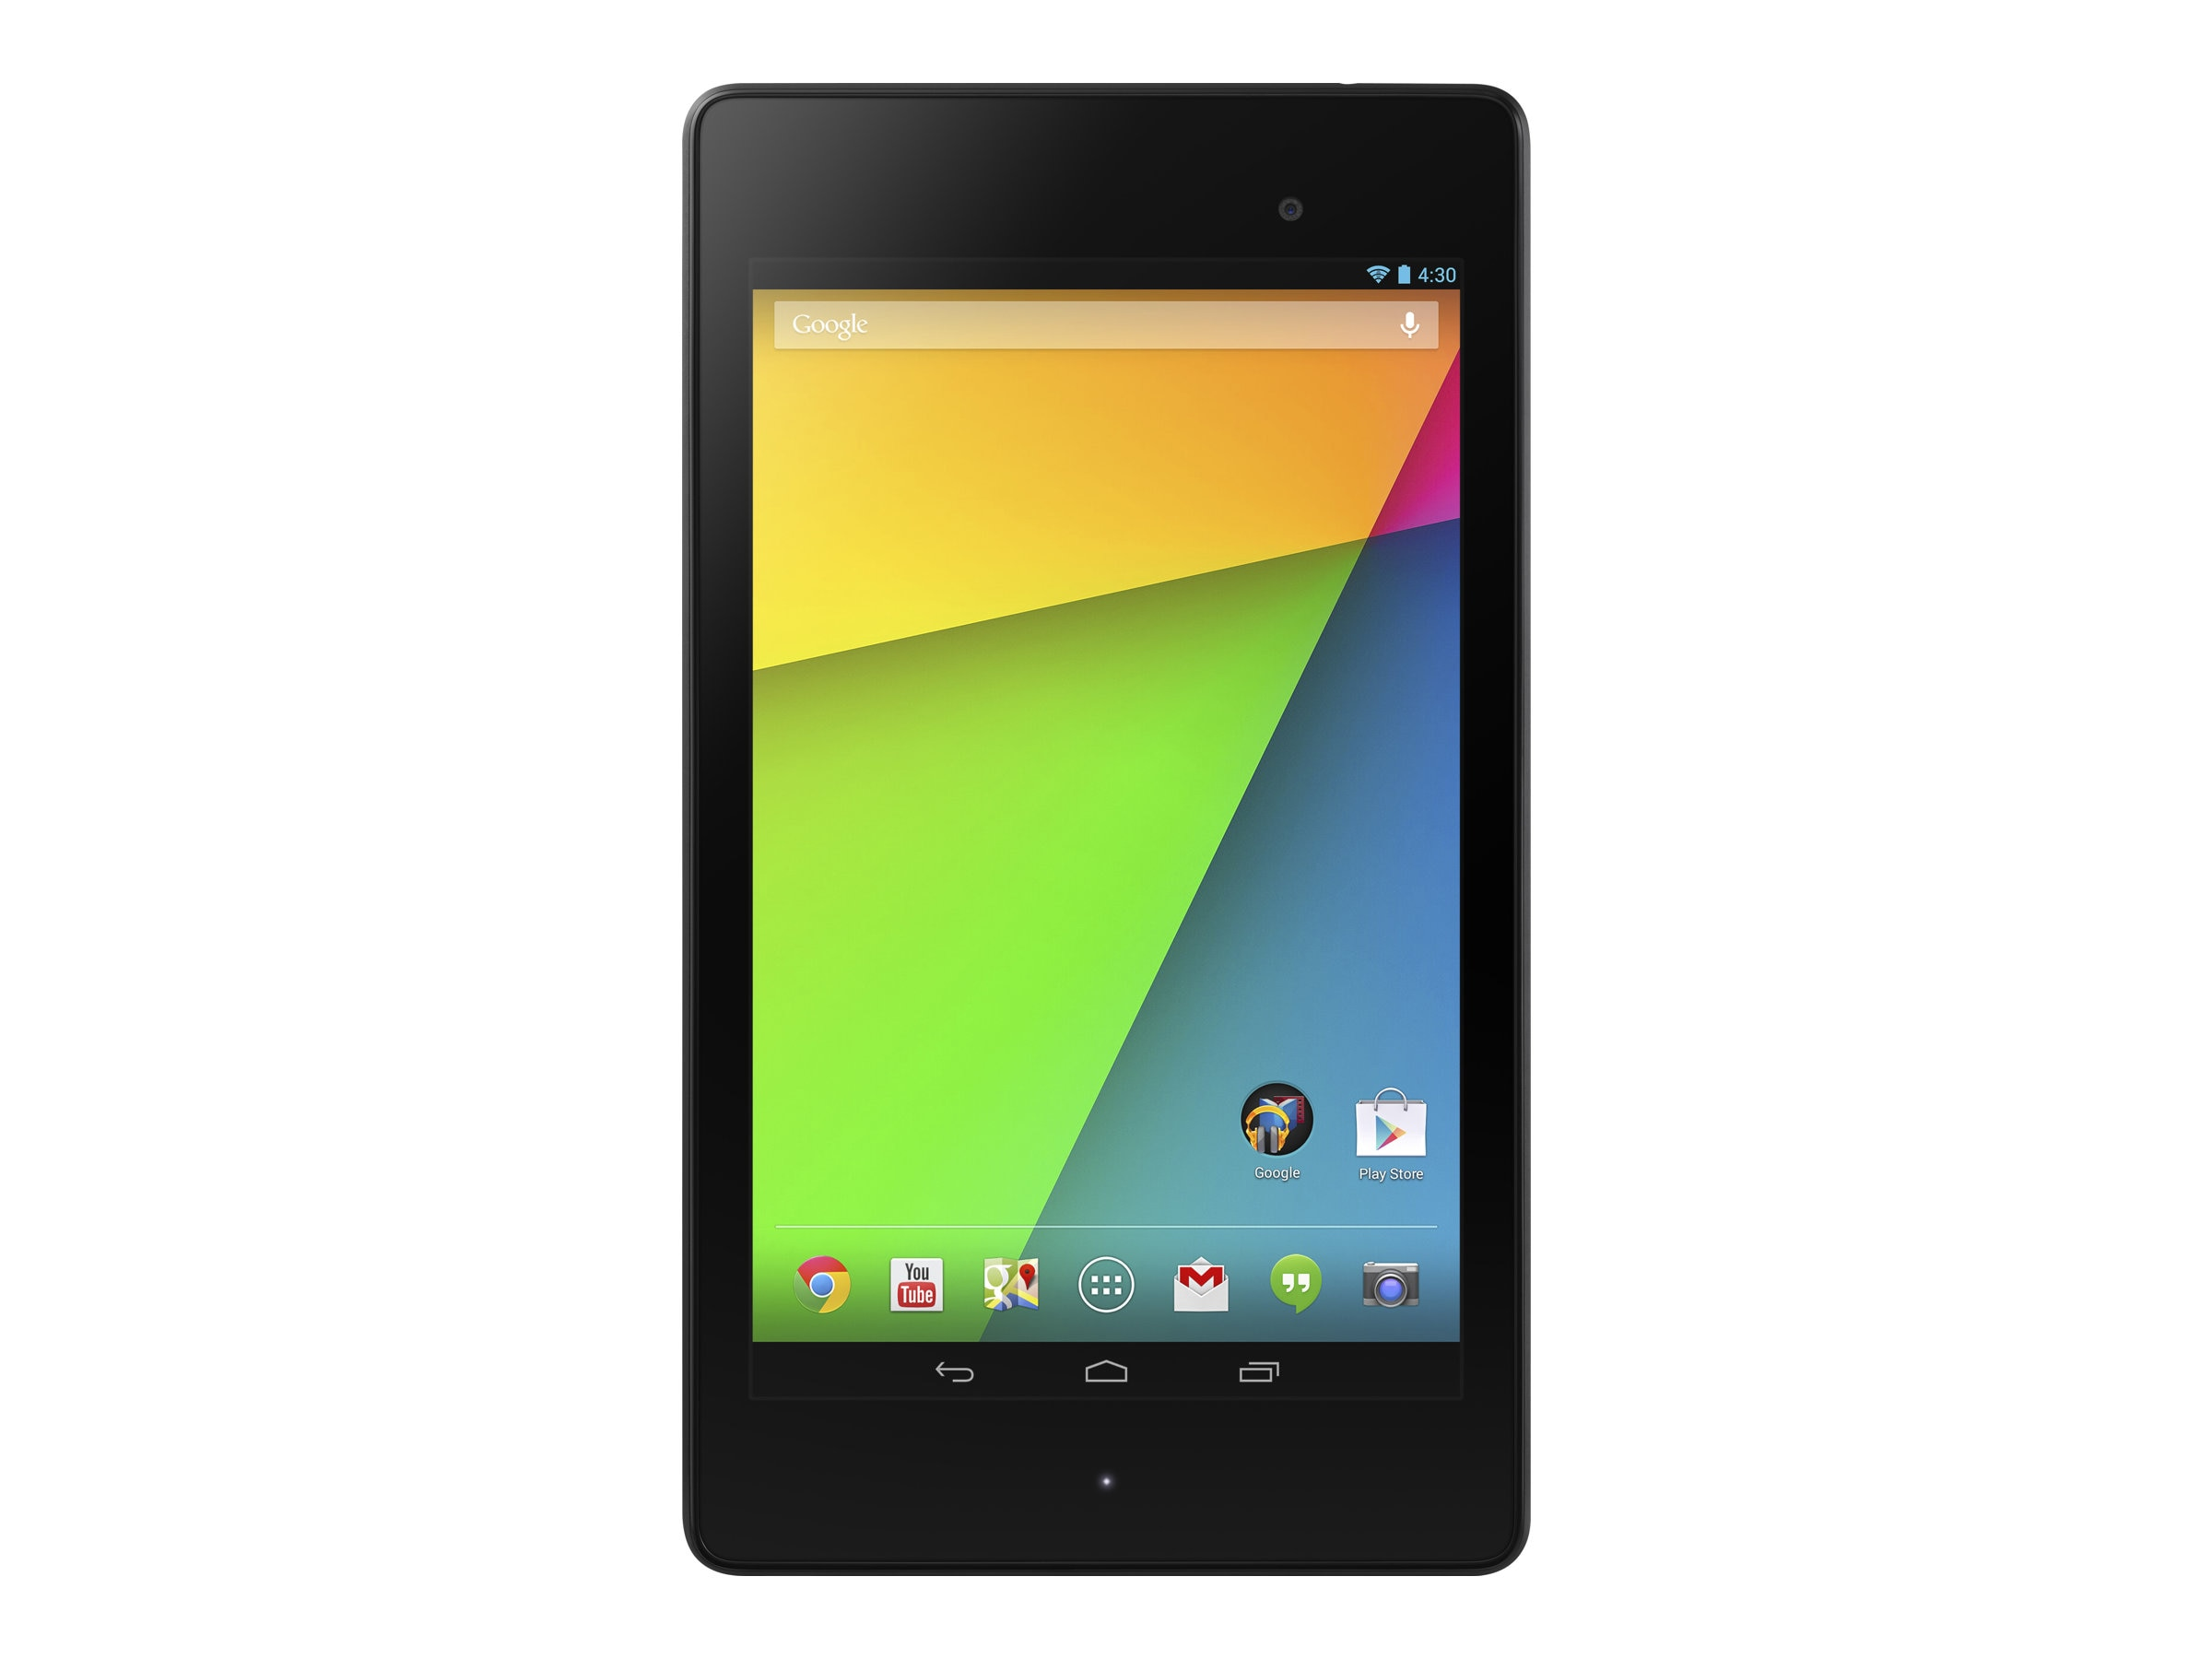 Open Box Asus Nexus 7 Snapdragon S4  1.5GHz 2GB 16GB abgn BT 2xWC 7 MT Android 4.4, NEXUS7ASUS-2B16